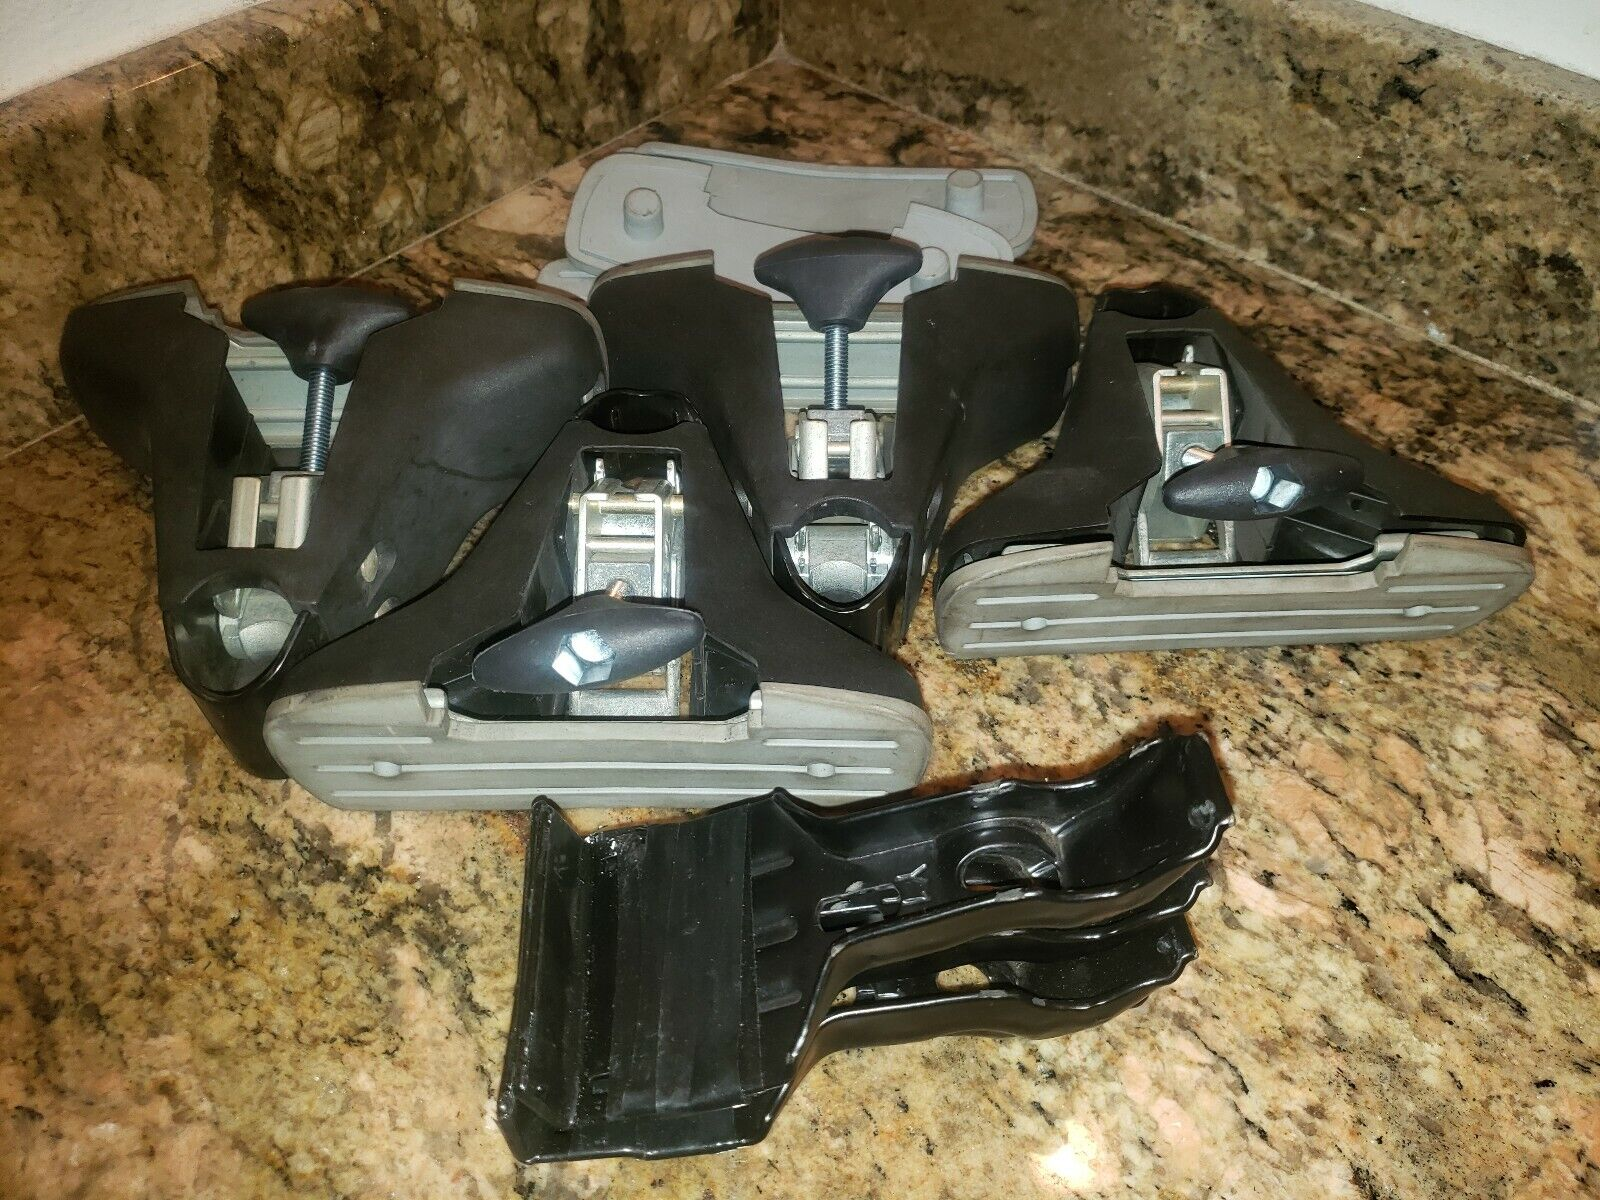 YAKIMA SST 1C Towers + Pads 4 y11 clips  extra pads  the newest brands outlet online